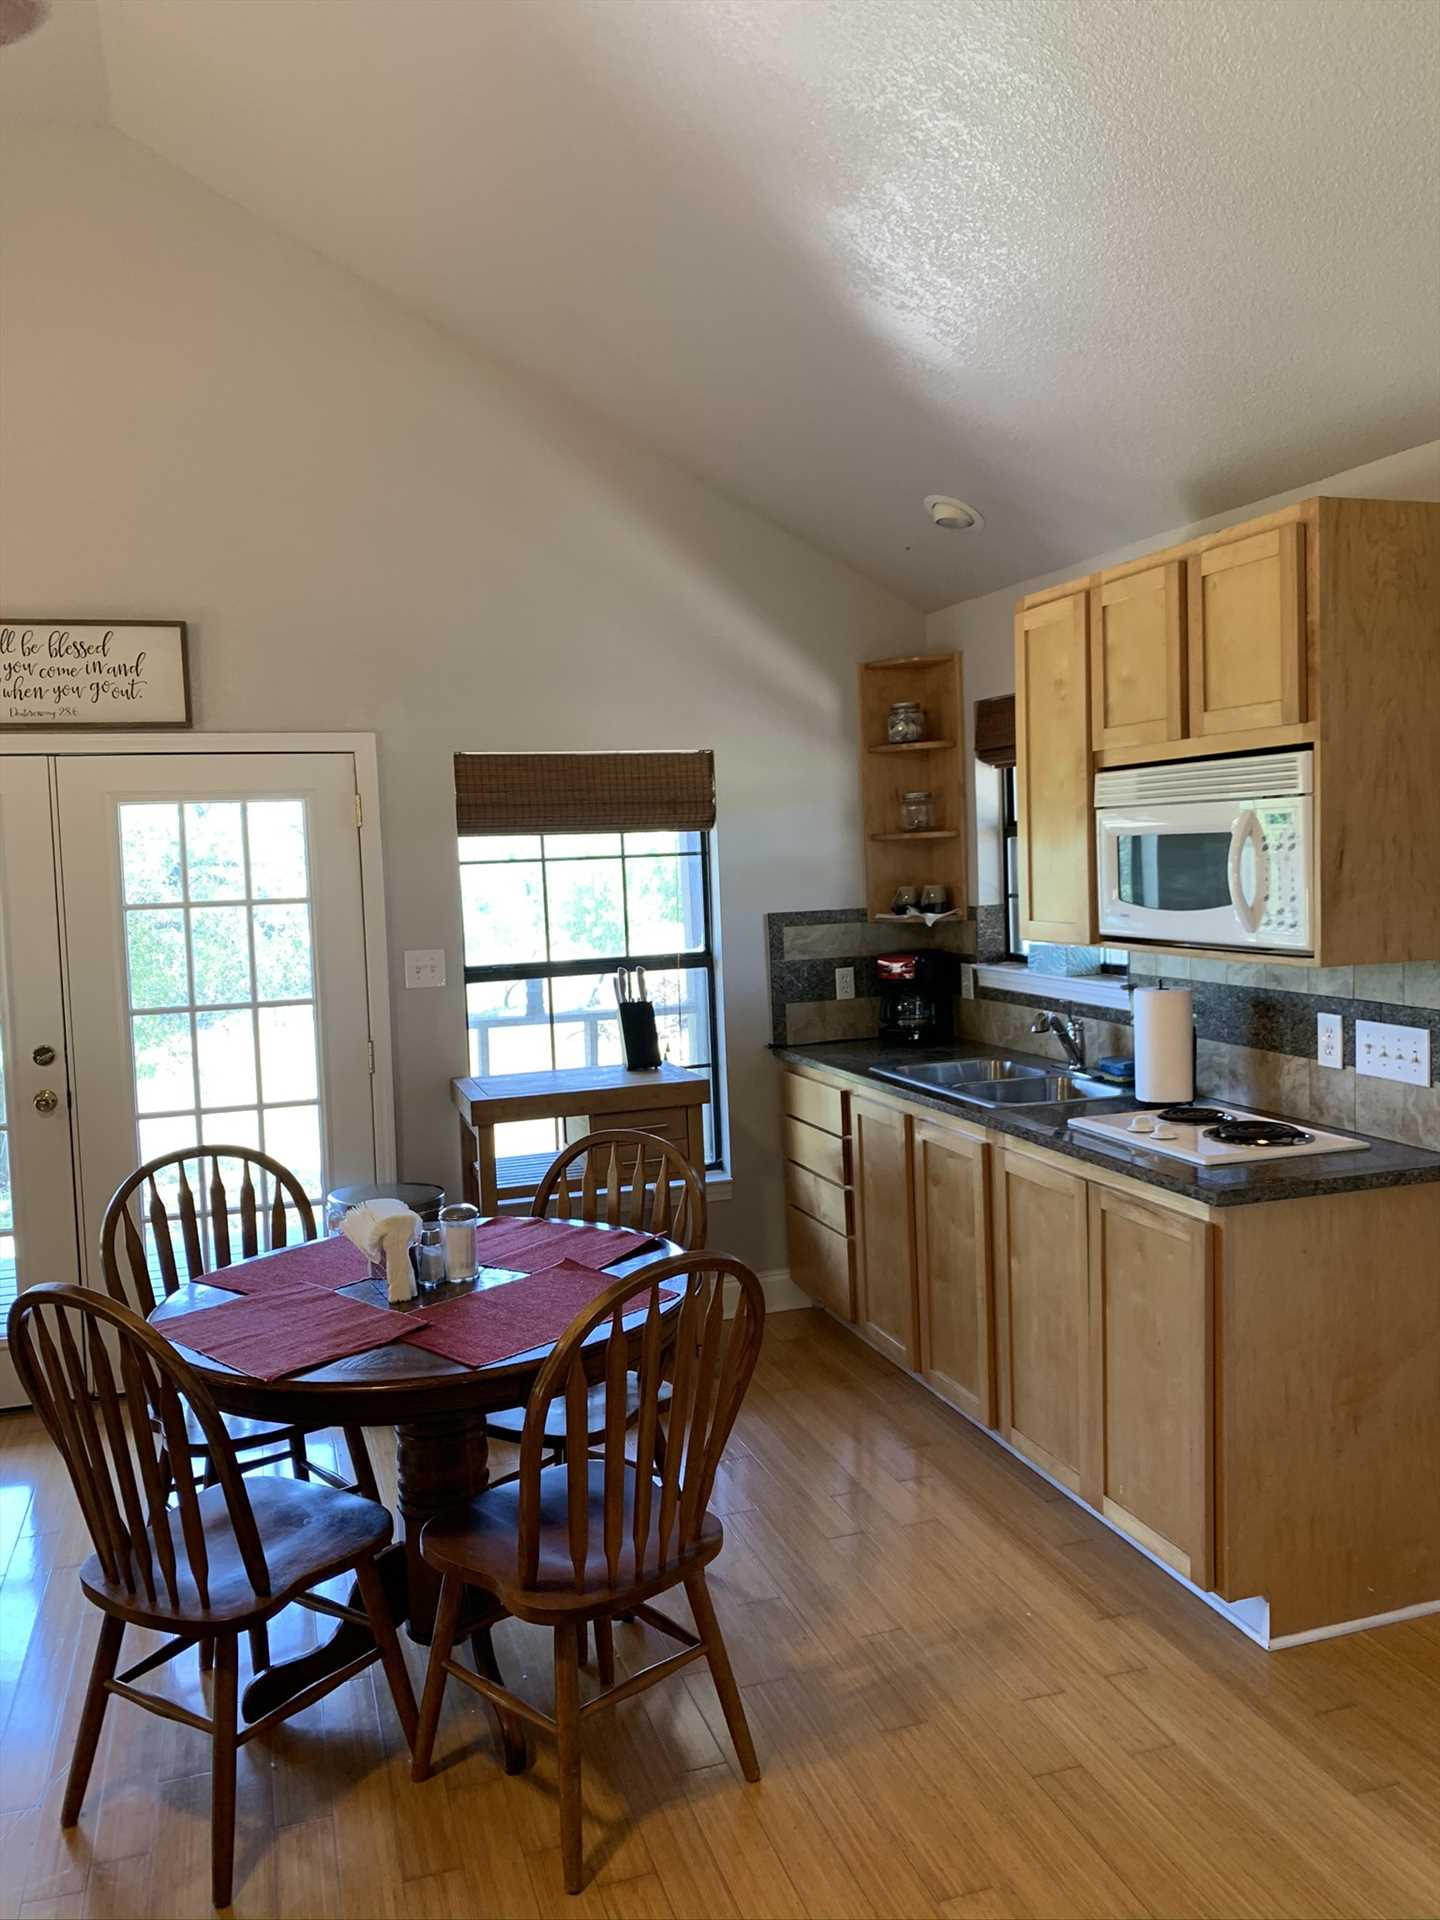 Blond wood furnishings and matching flooring create a comfortable and friendly space in the kitchen and dining room.